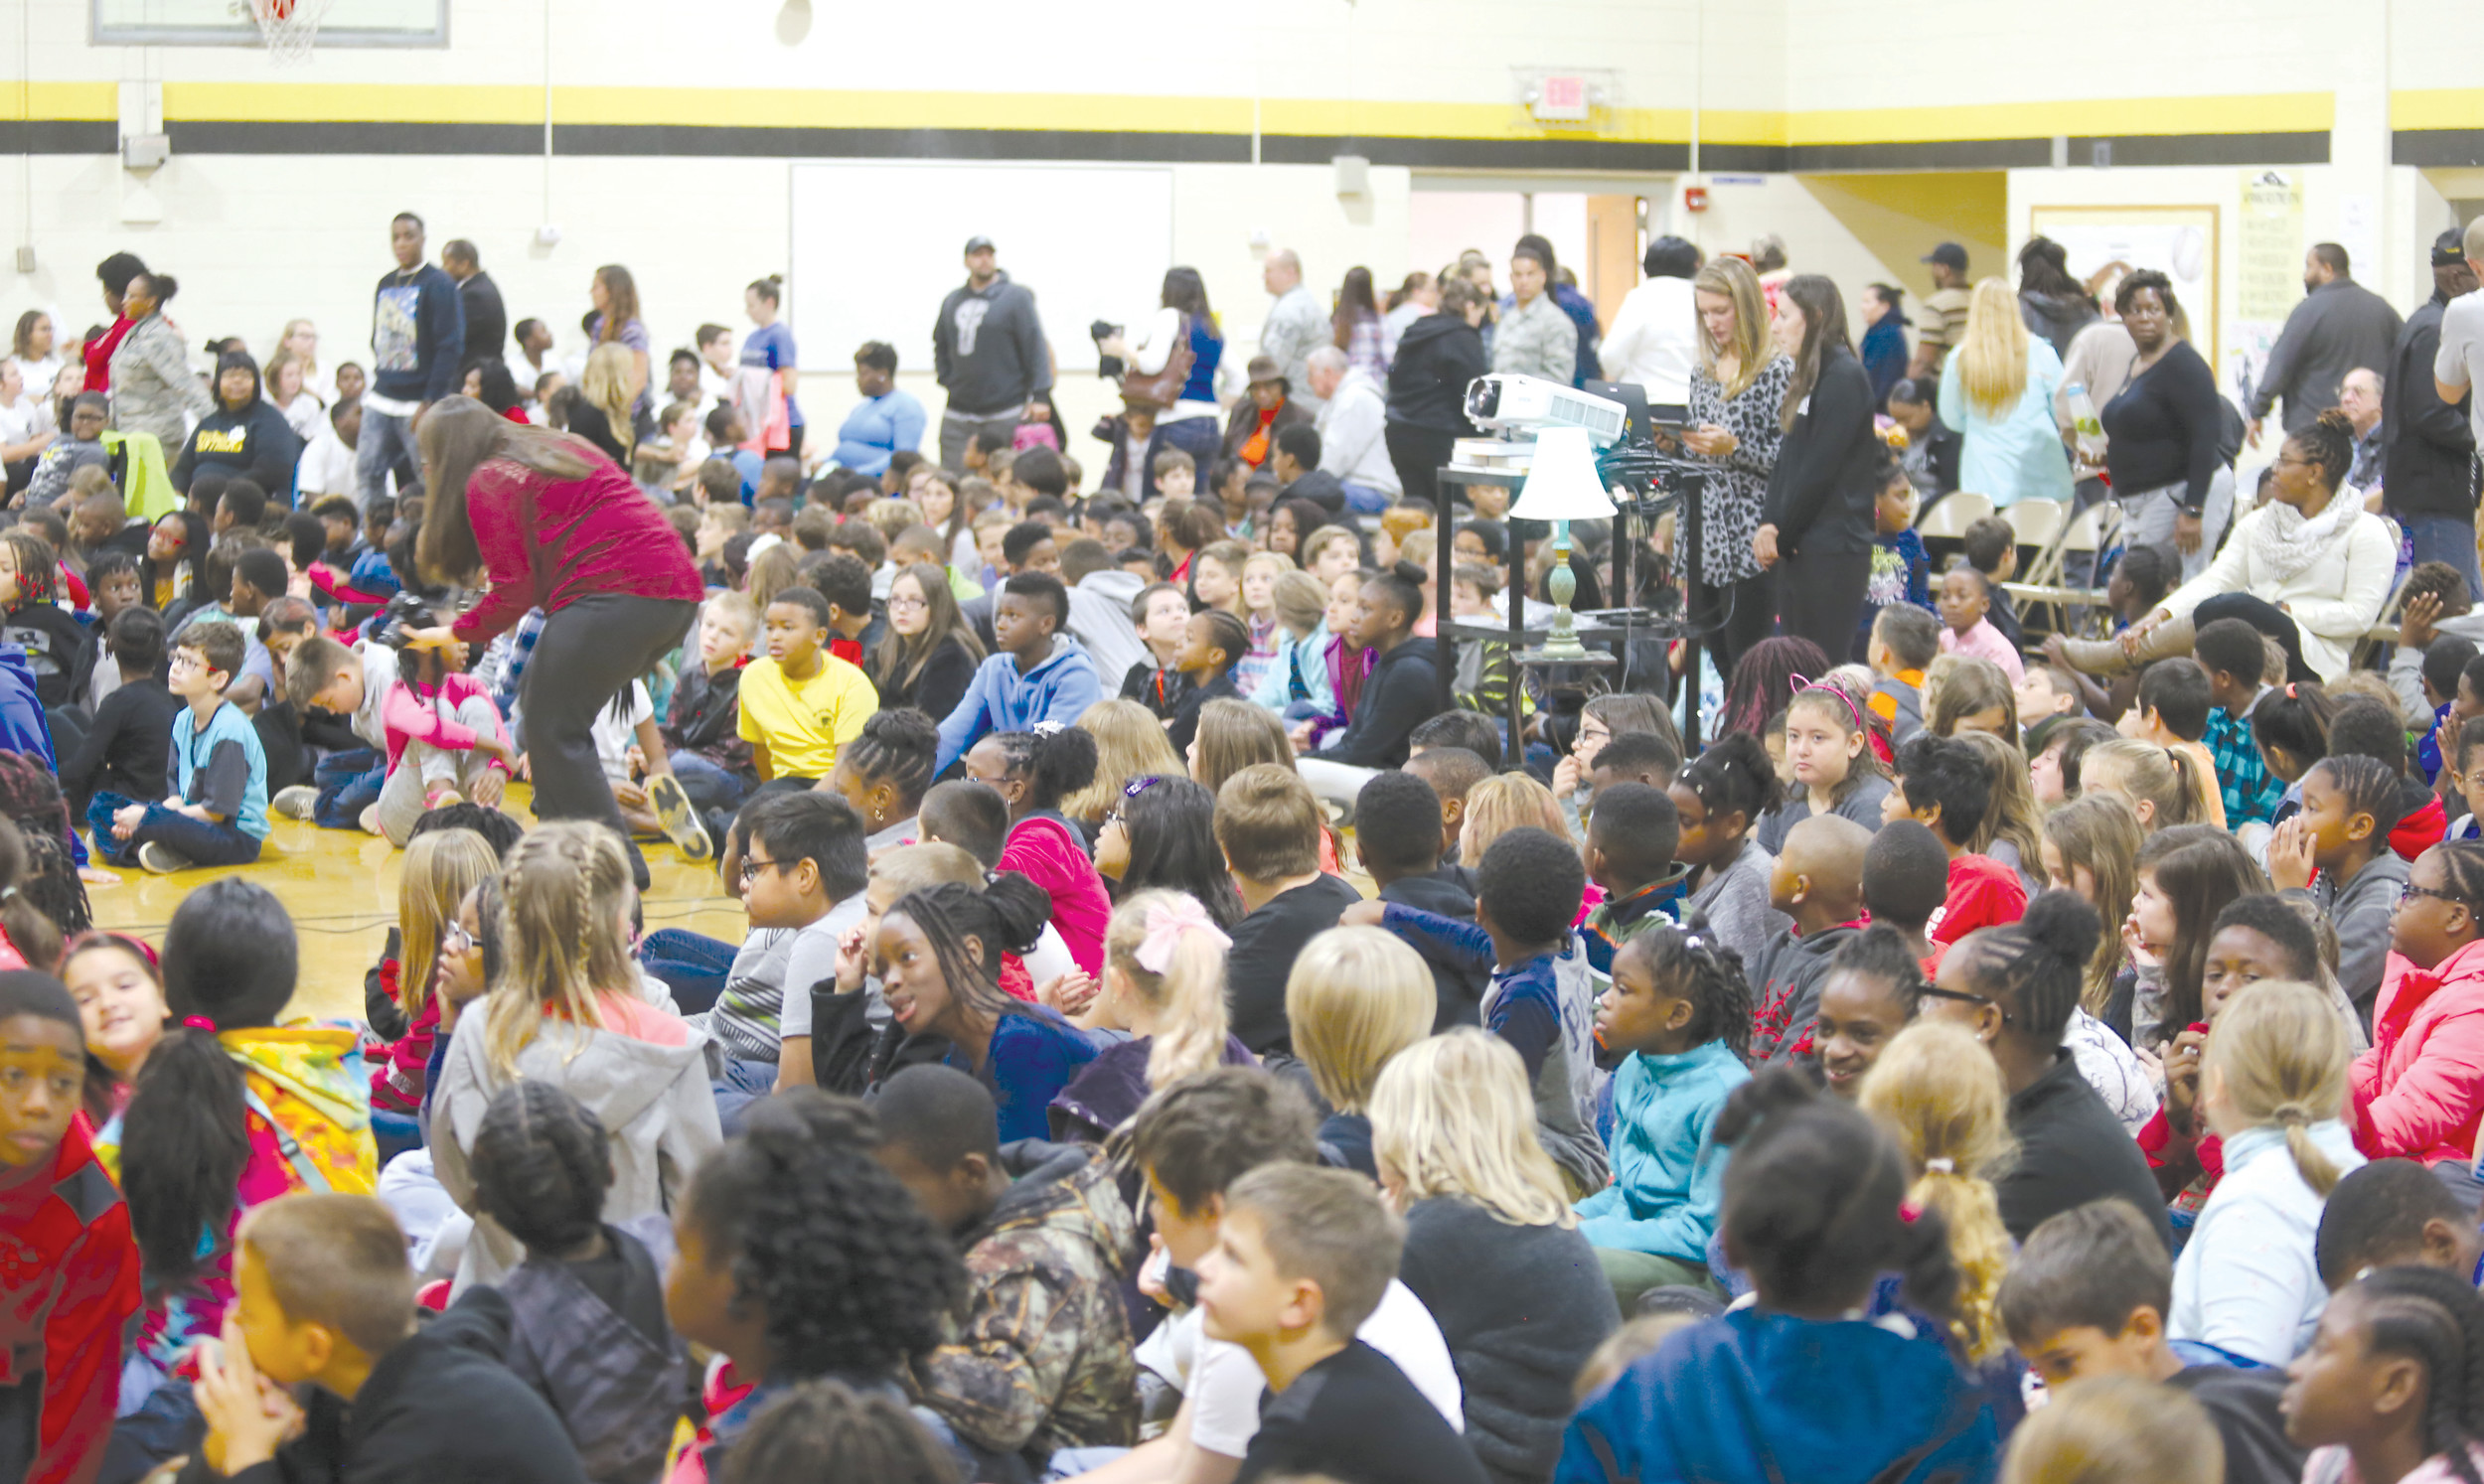 High Hills Elementary School students sit and listen Thursday during the school's Veterans Day program.